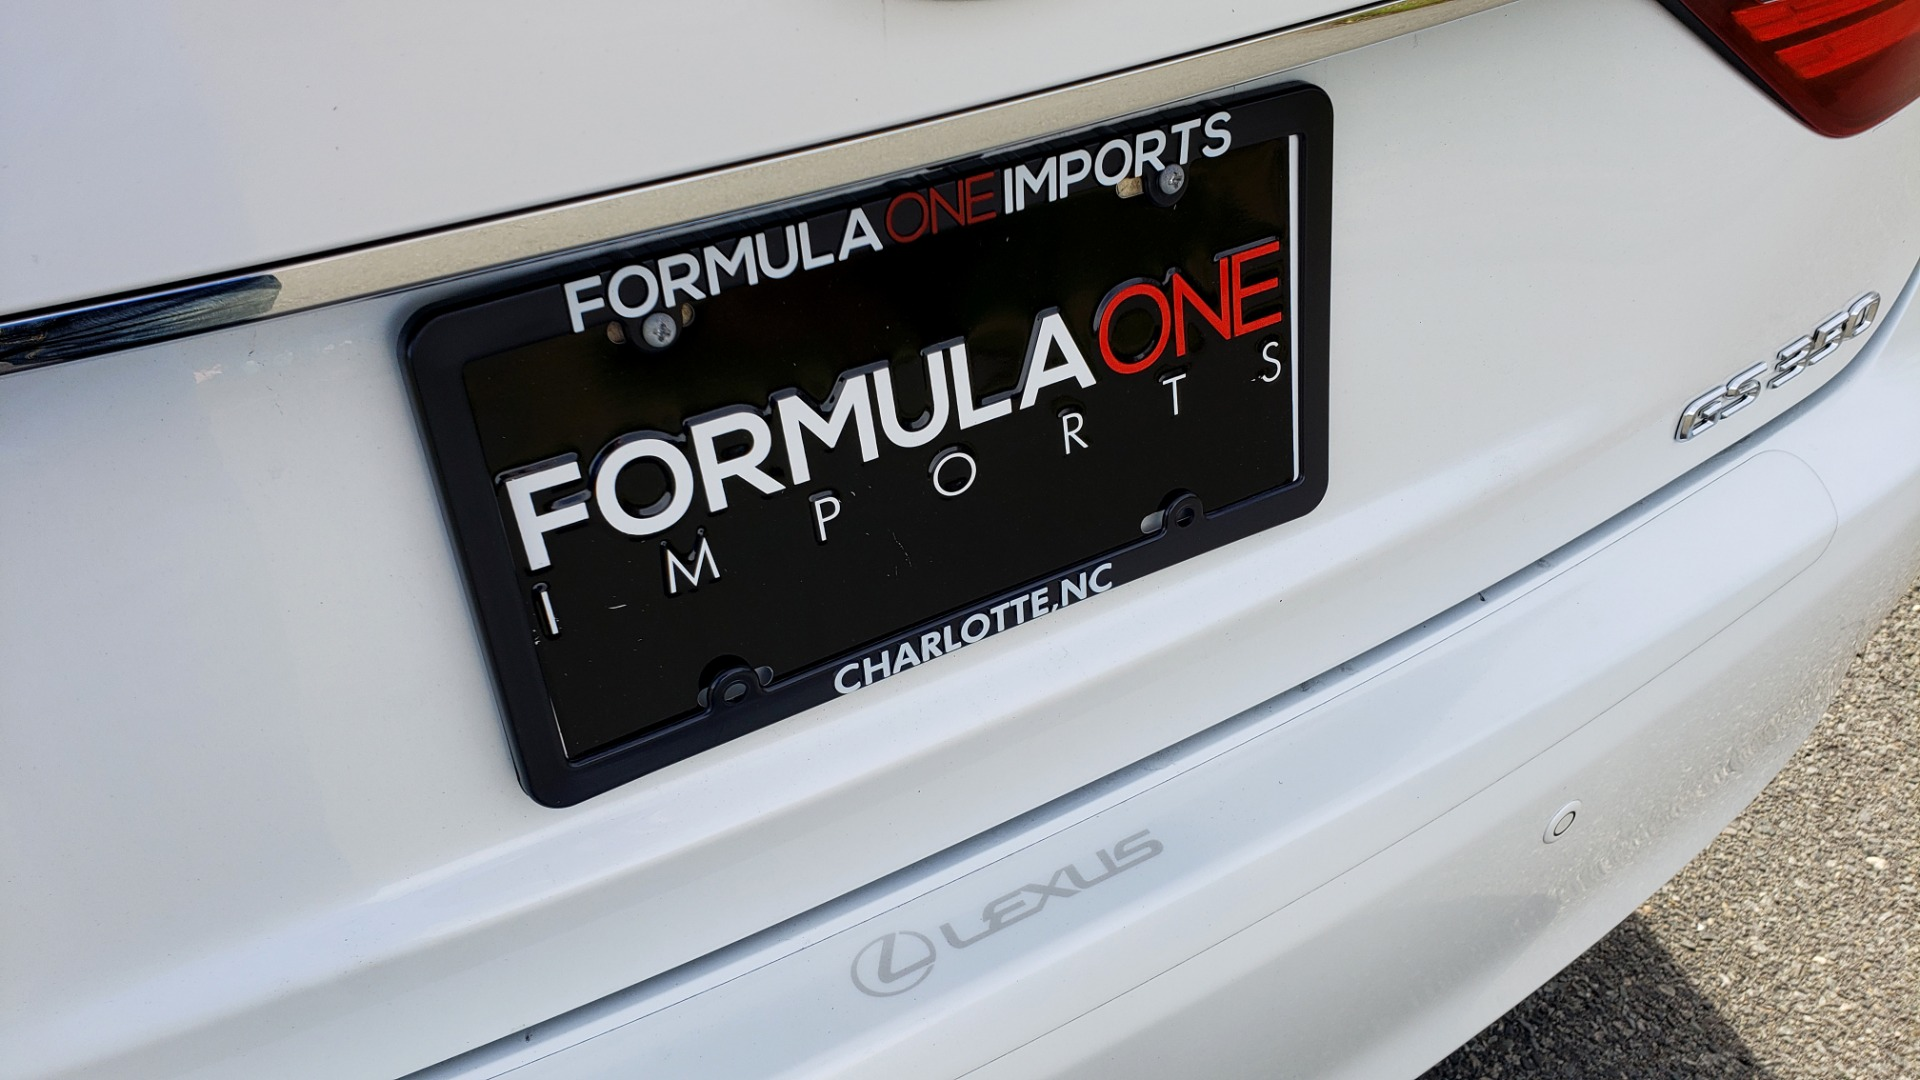 Used 2013 Lexus GS 350 F-SPORT / NAV / SUNROOF / BSM / PRK ASST / REARVIEW for sale Sold at Formula Imports in Charlotte NC 28227 15